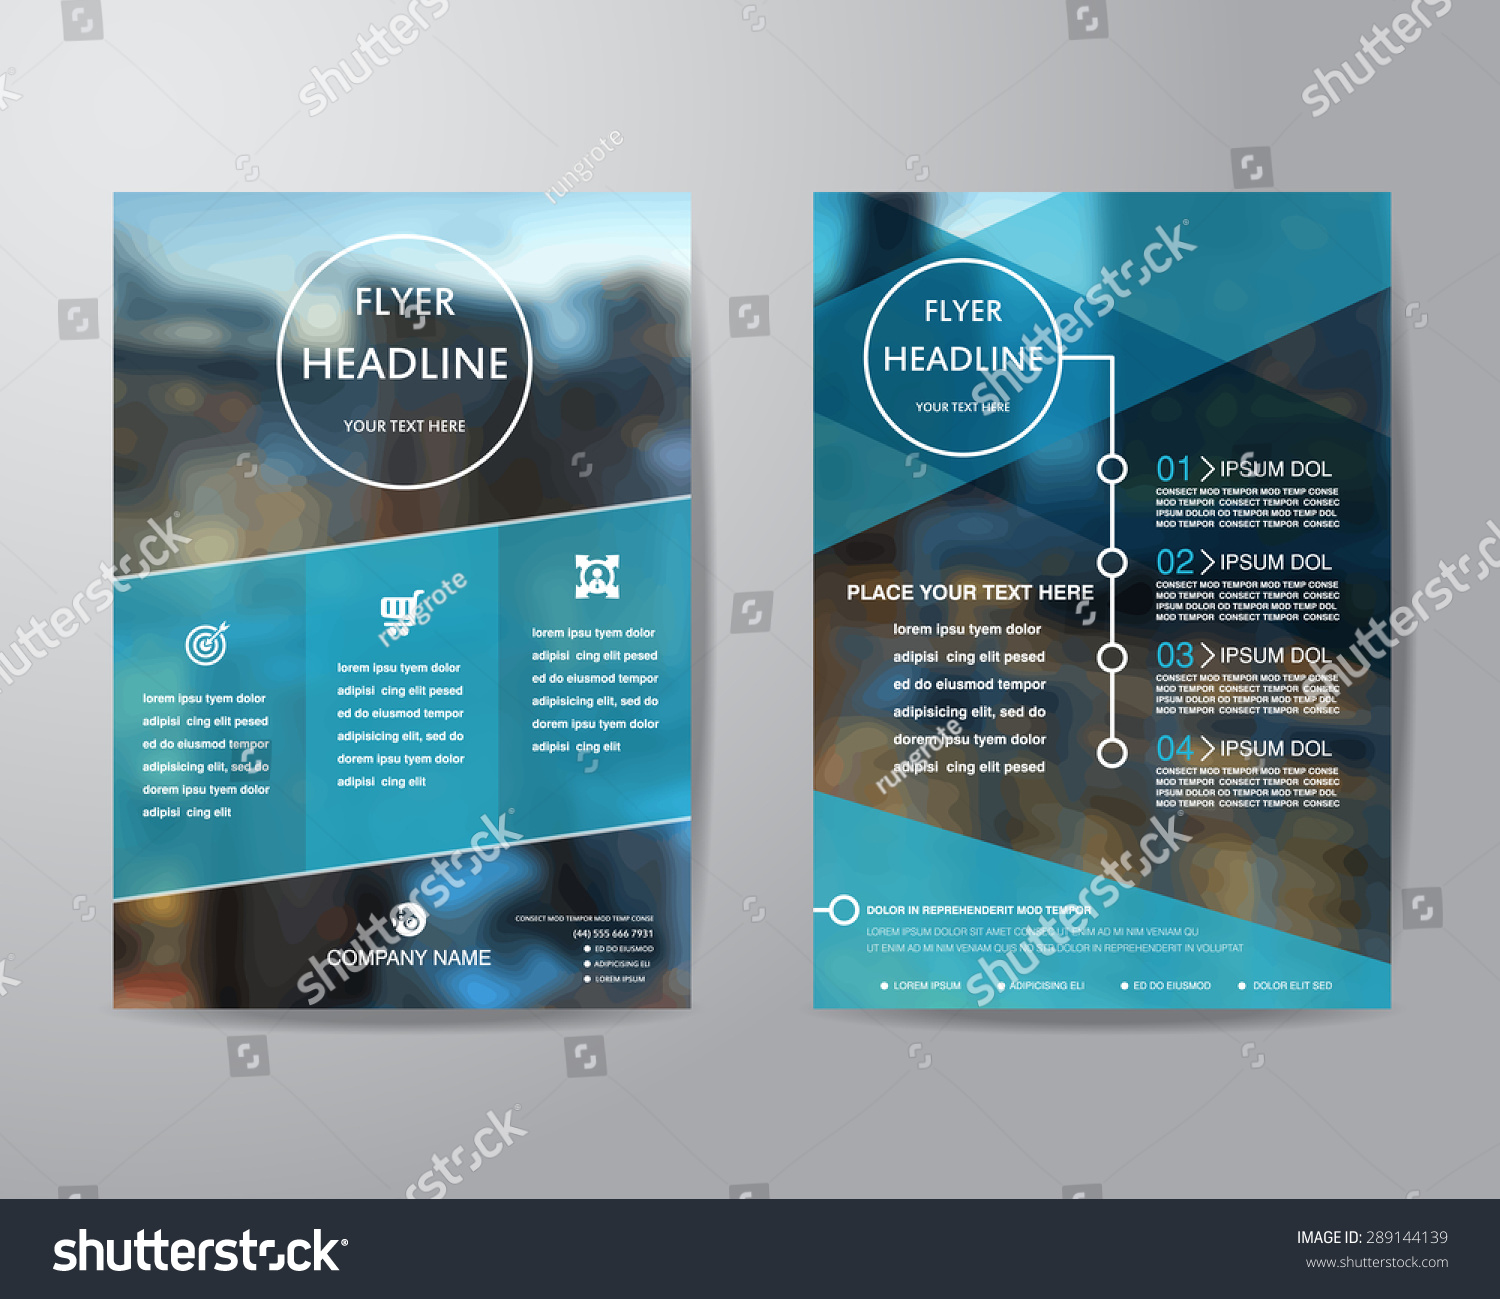 business brochure flyer design layout template in A4 size, with ...